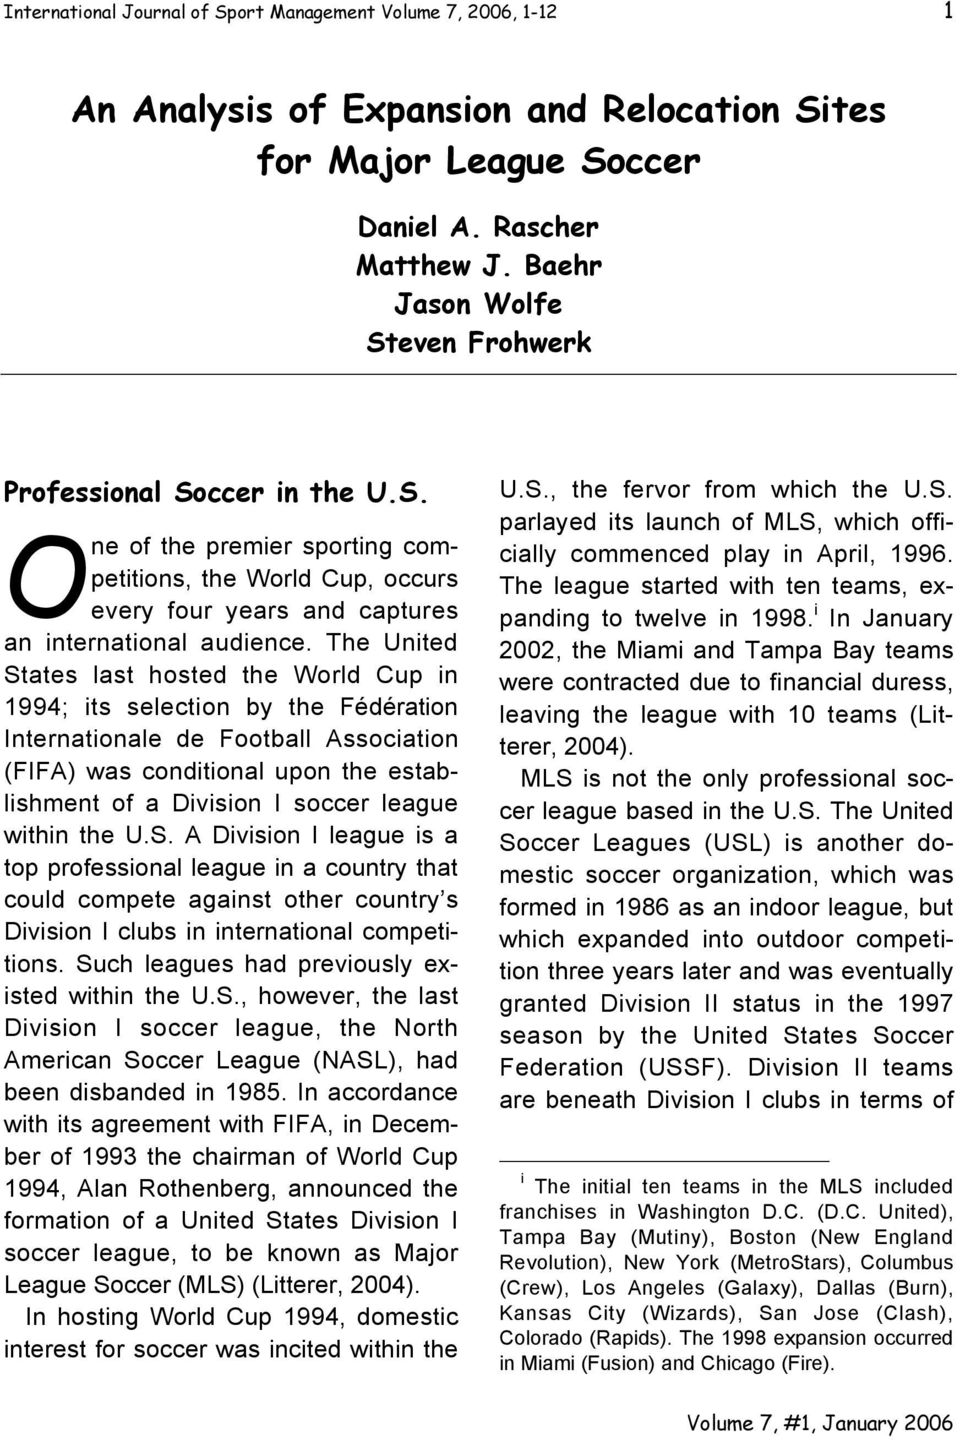 The United States last hosted the World Cup in 1994; its selection by the Fédération Internationale de Football Association (FIFA) was conditional upon the establishment of a Division I soccer league